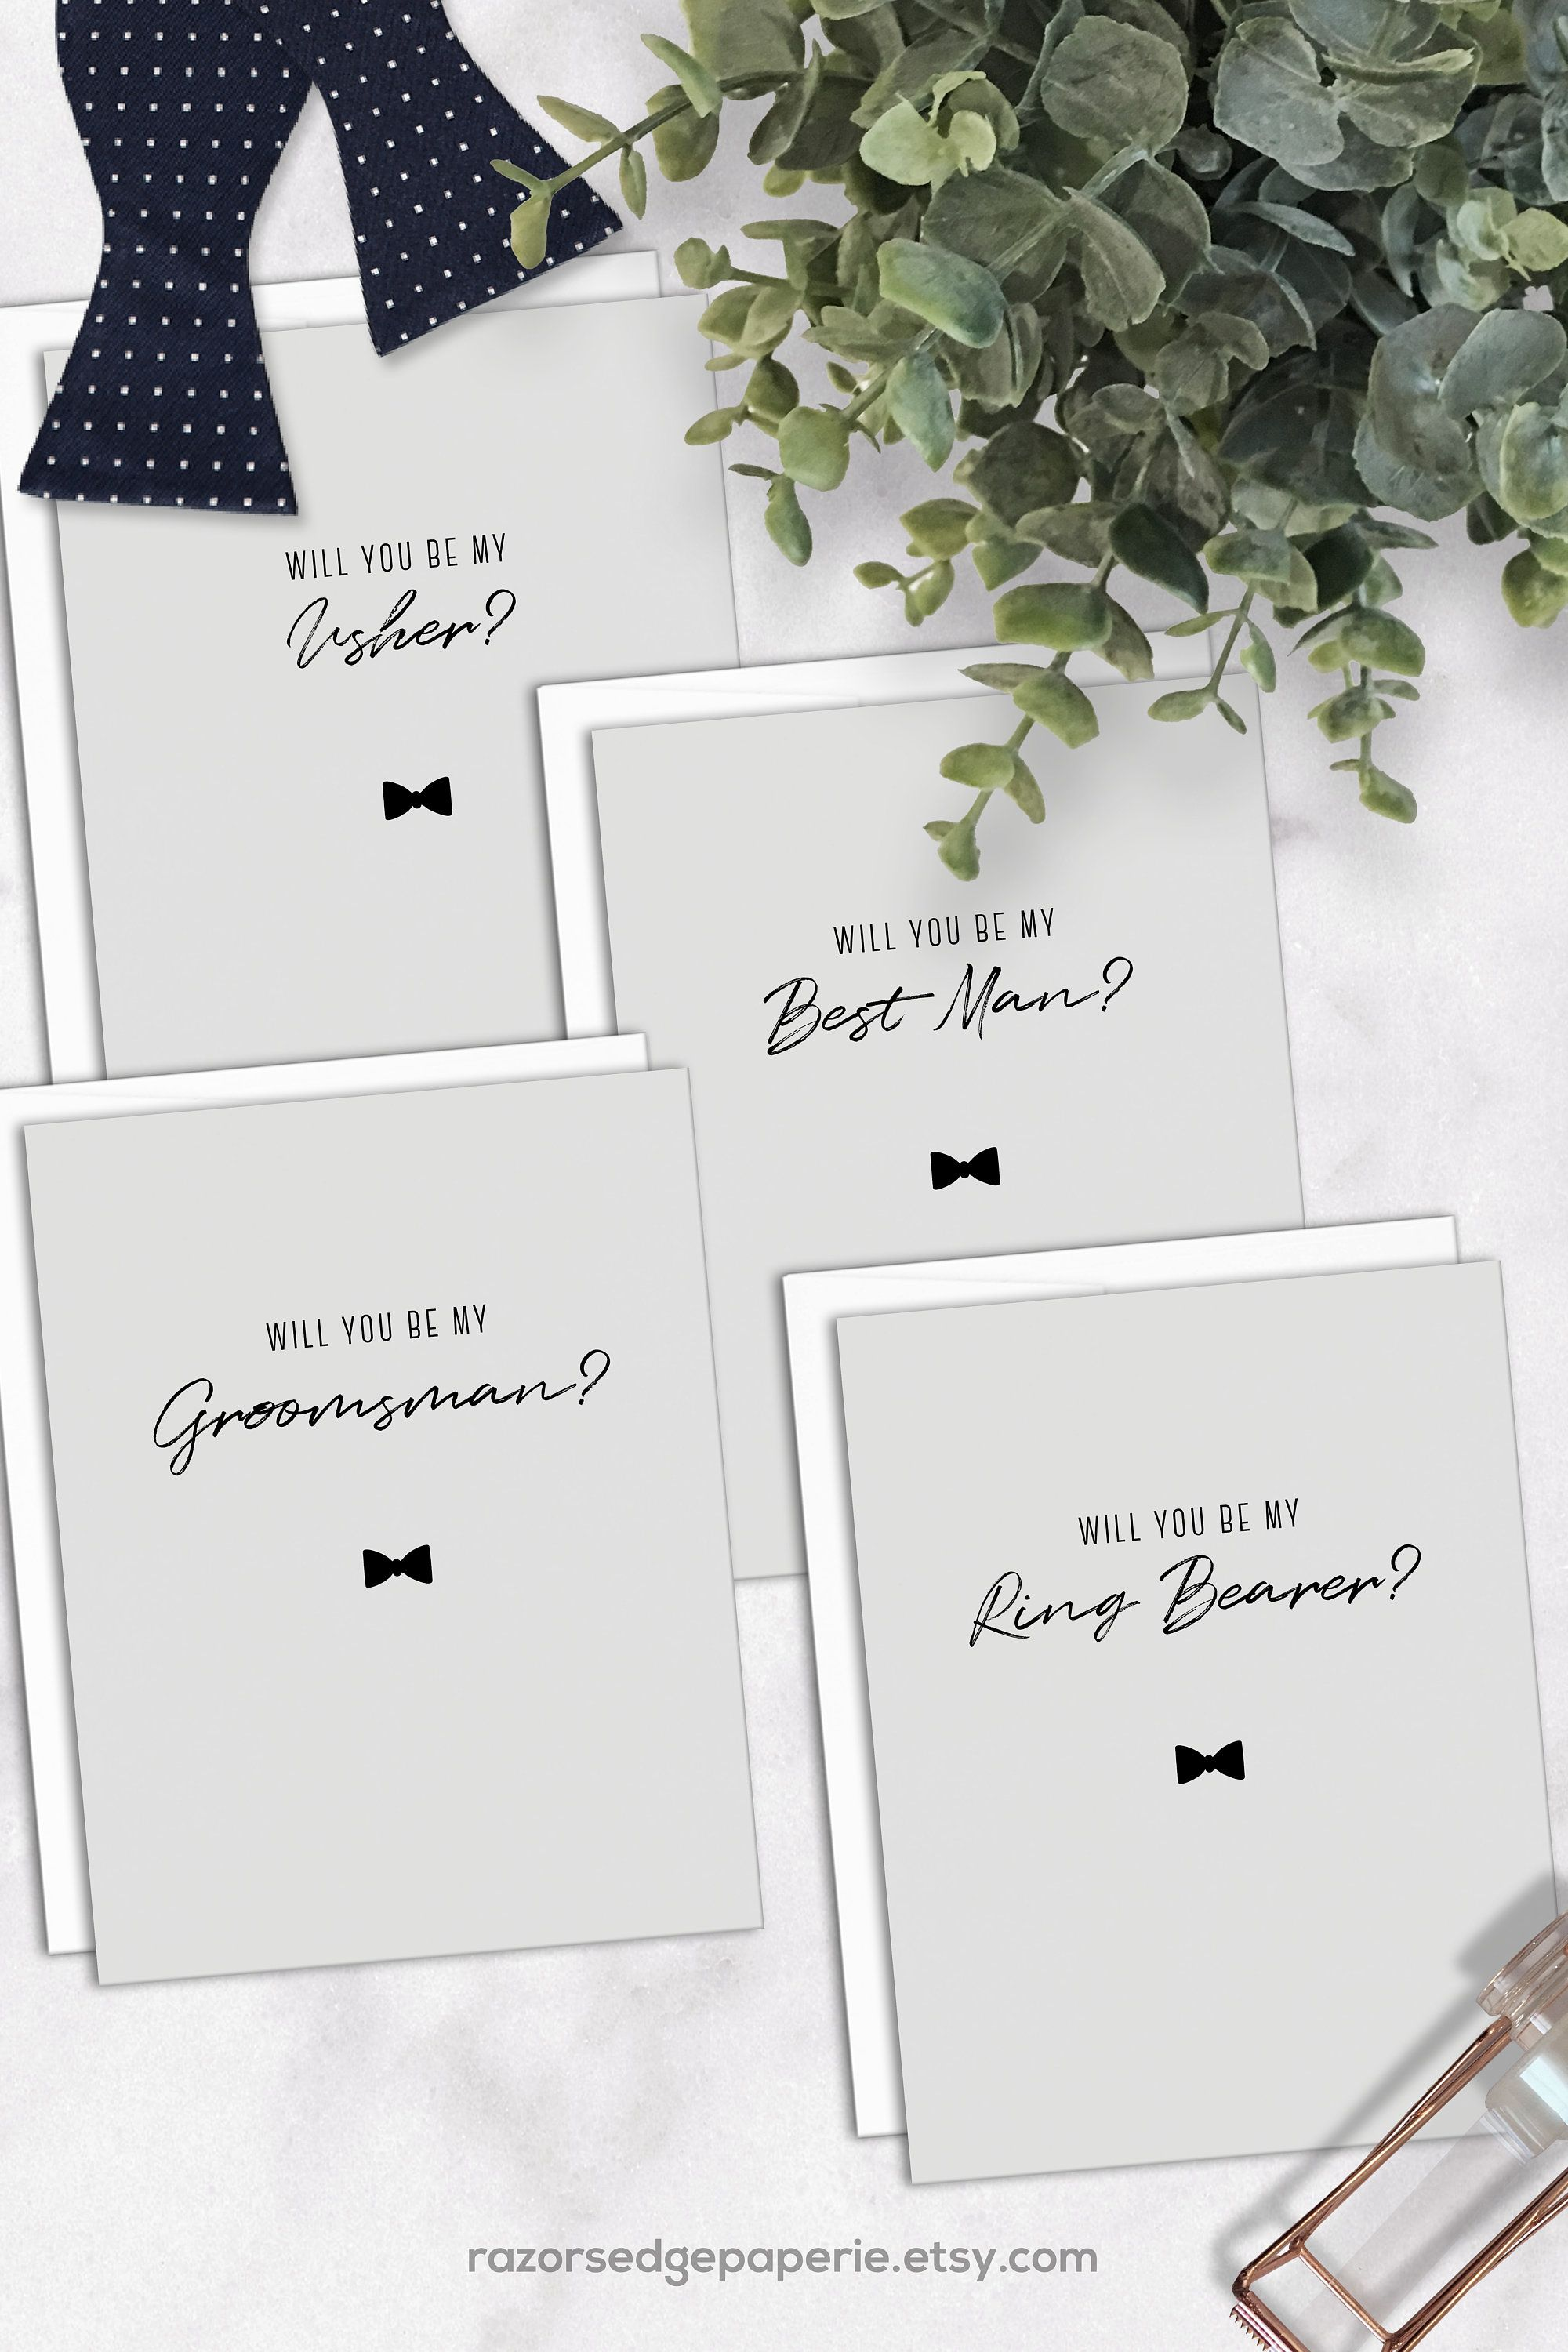 Printable Groomsman Proposal Cards Instant Download Bowtie Etsy Groomsmen Proposal Groomsman Card Printable Invitations